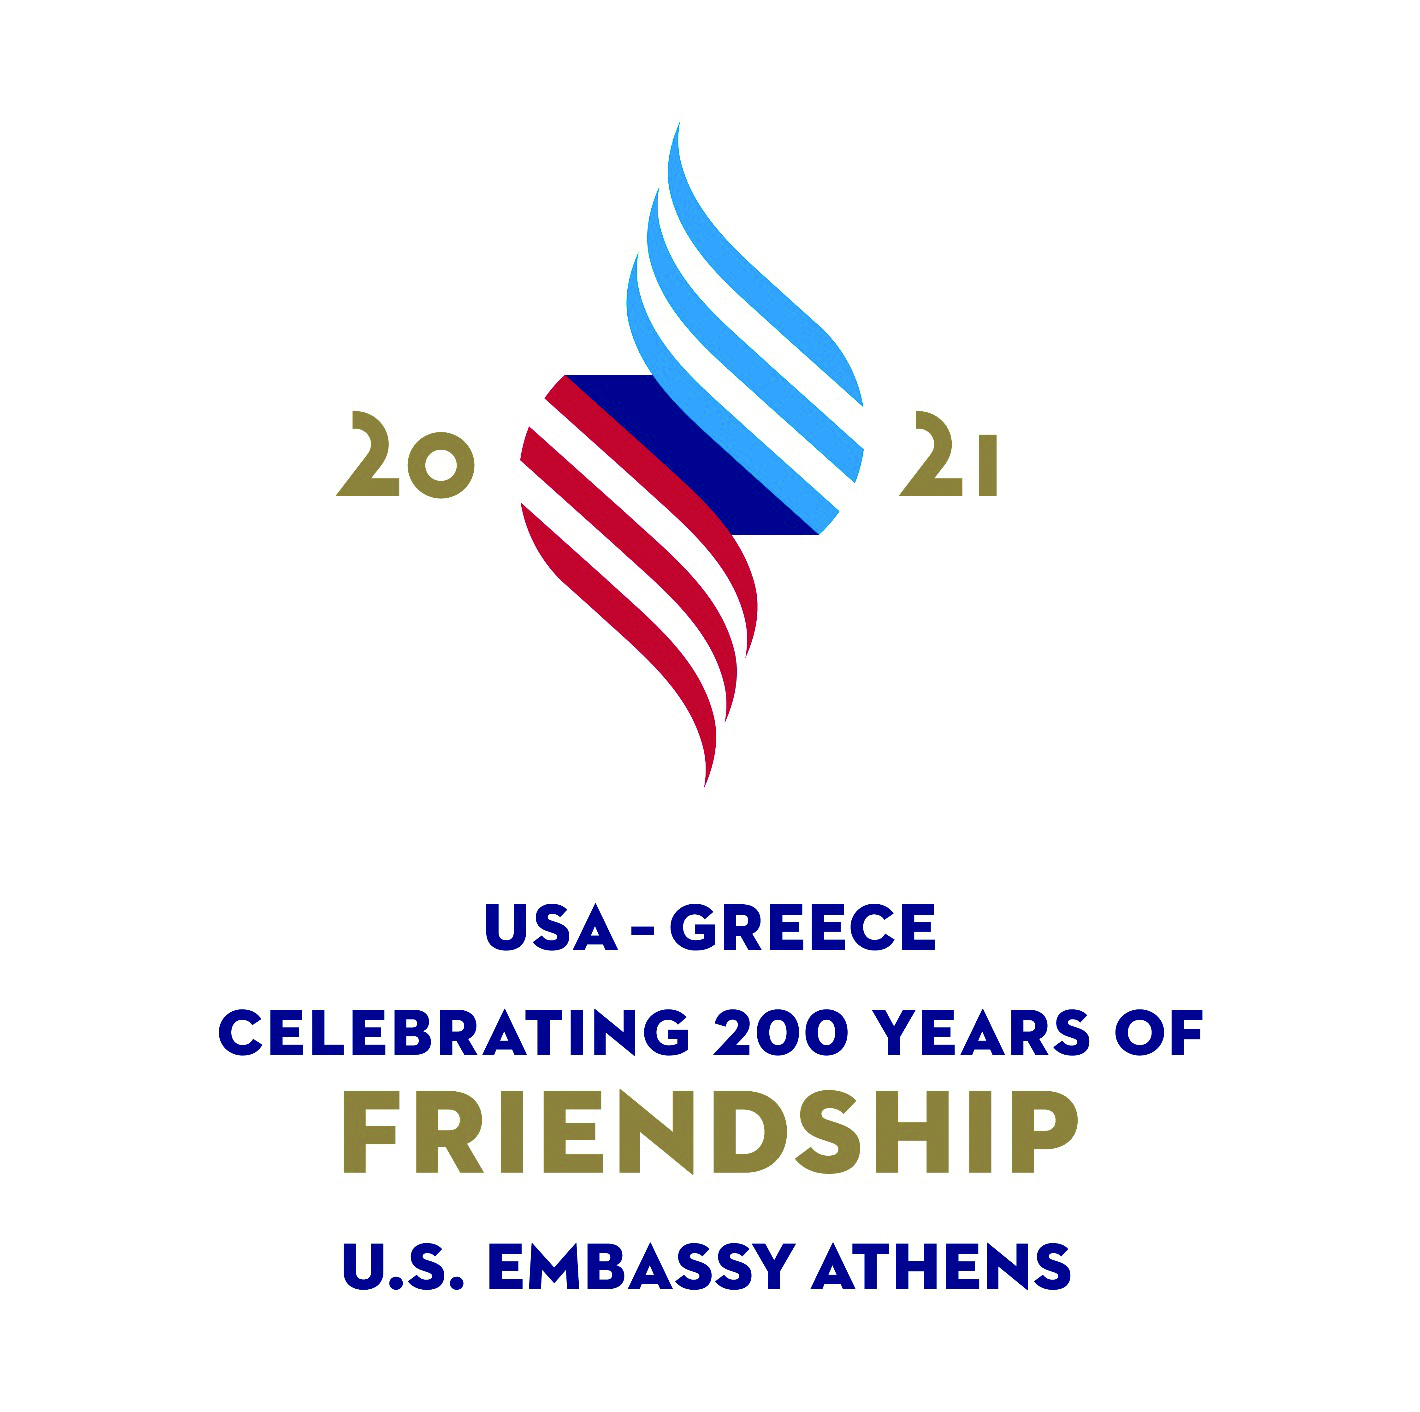 celebrating-200-years-of-friendship0